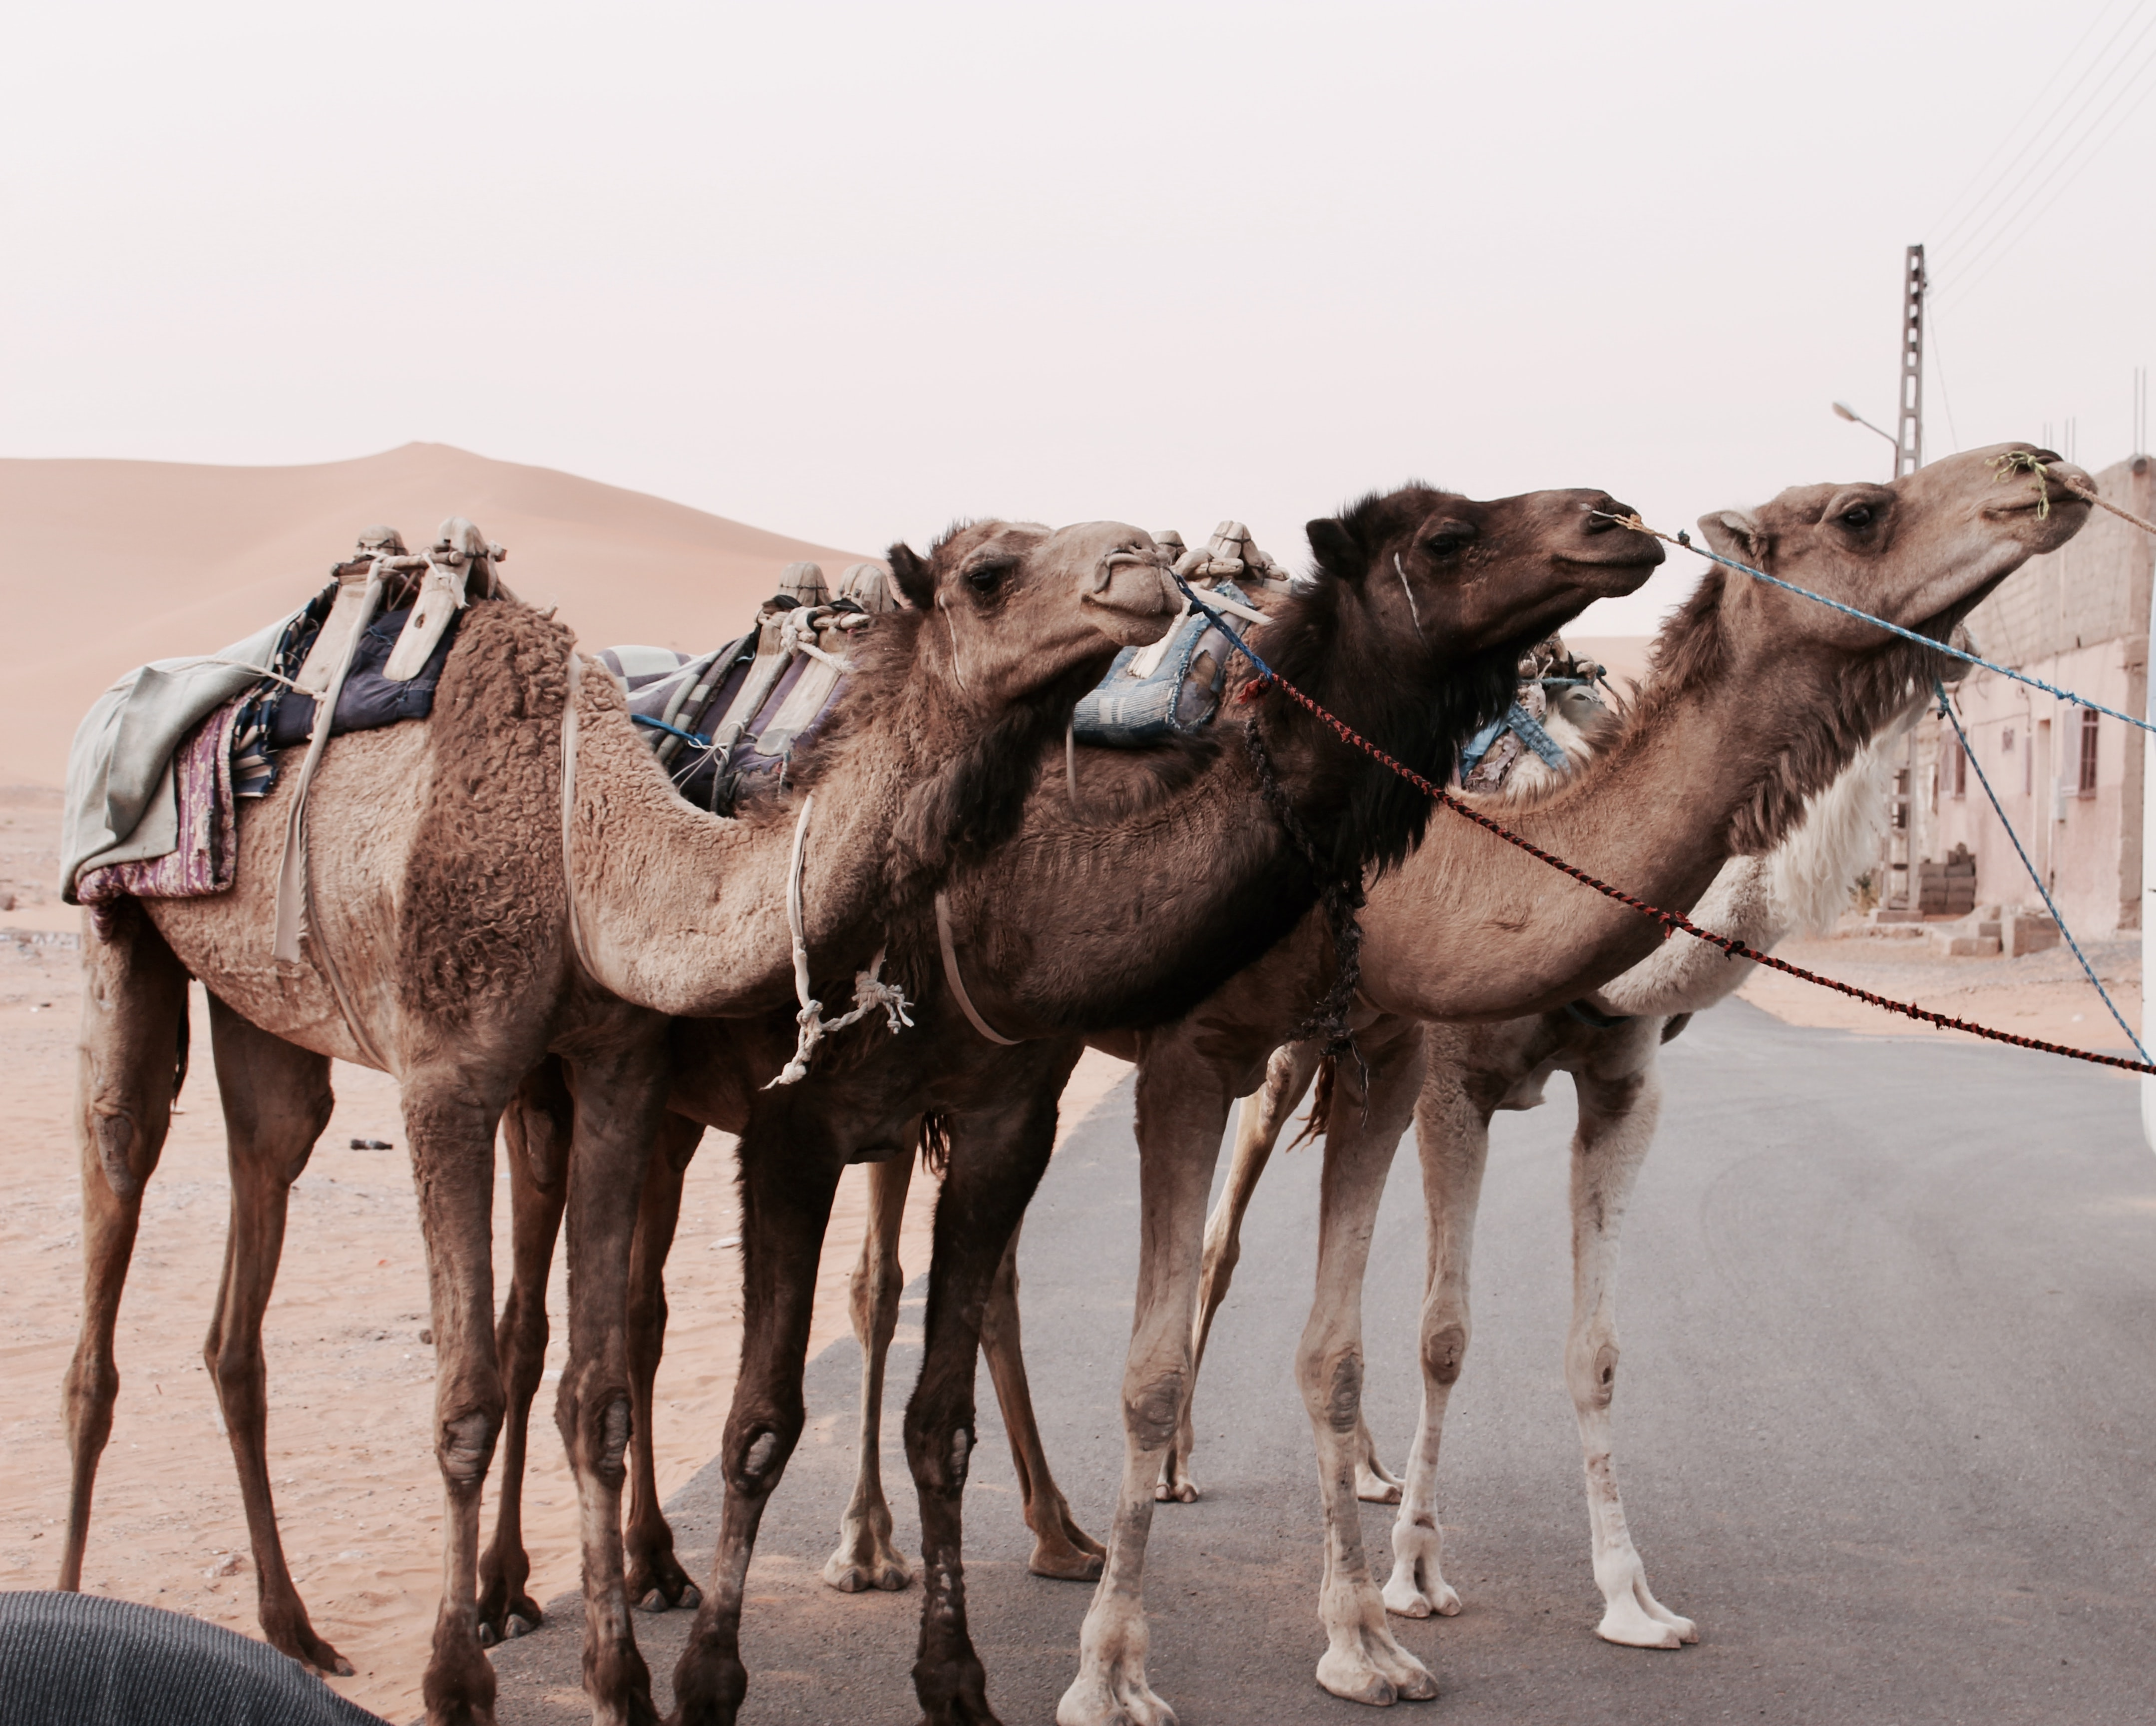 three camels standing on street